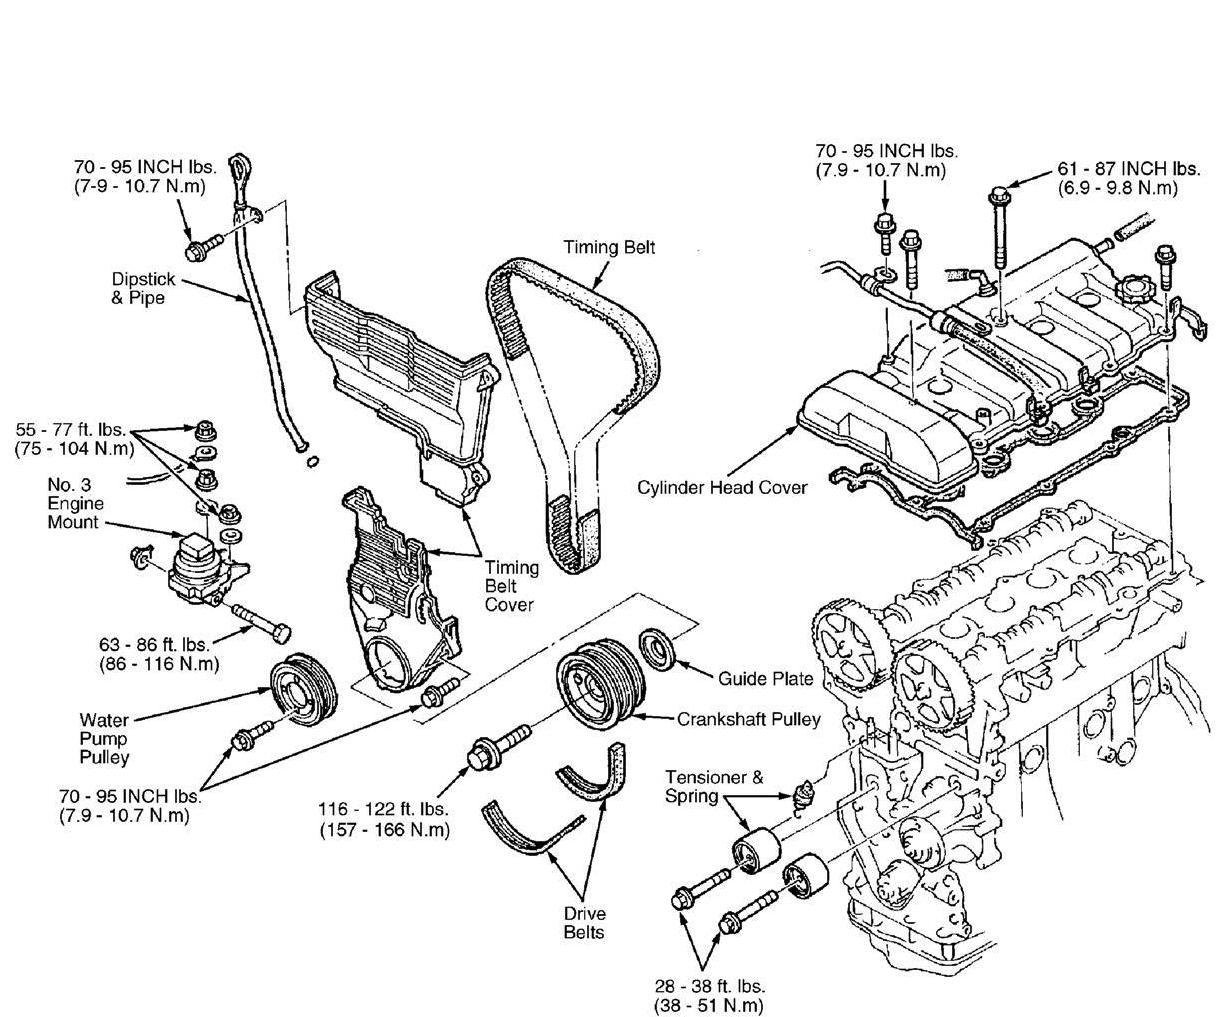 07 f150 v6 engine diagram  07  free engine image for user